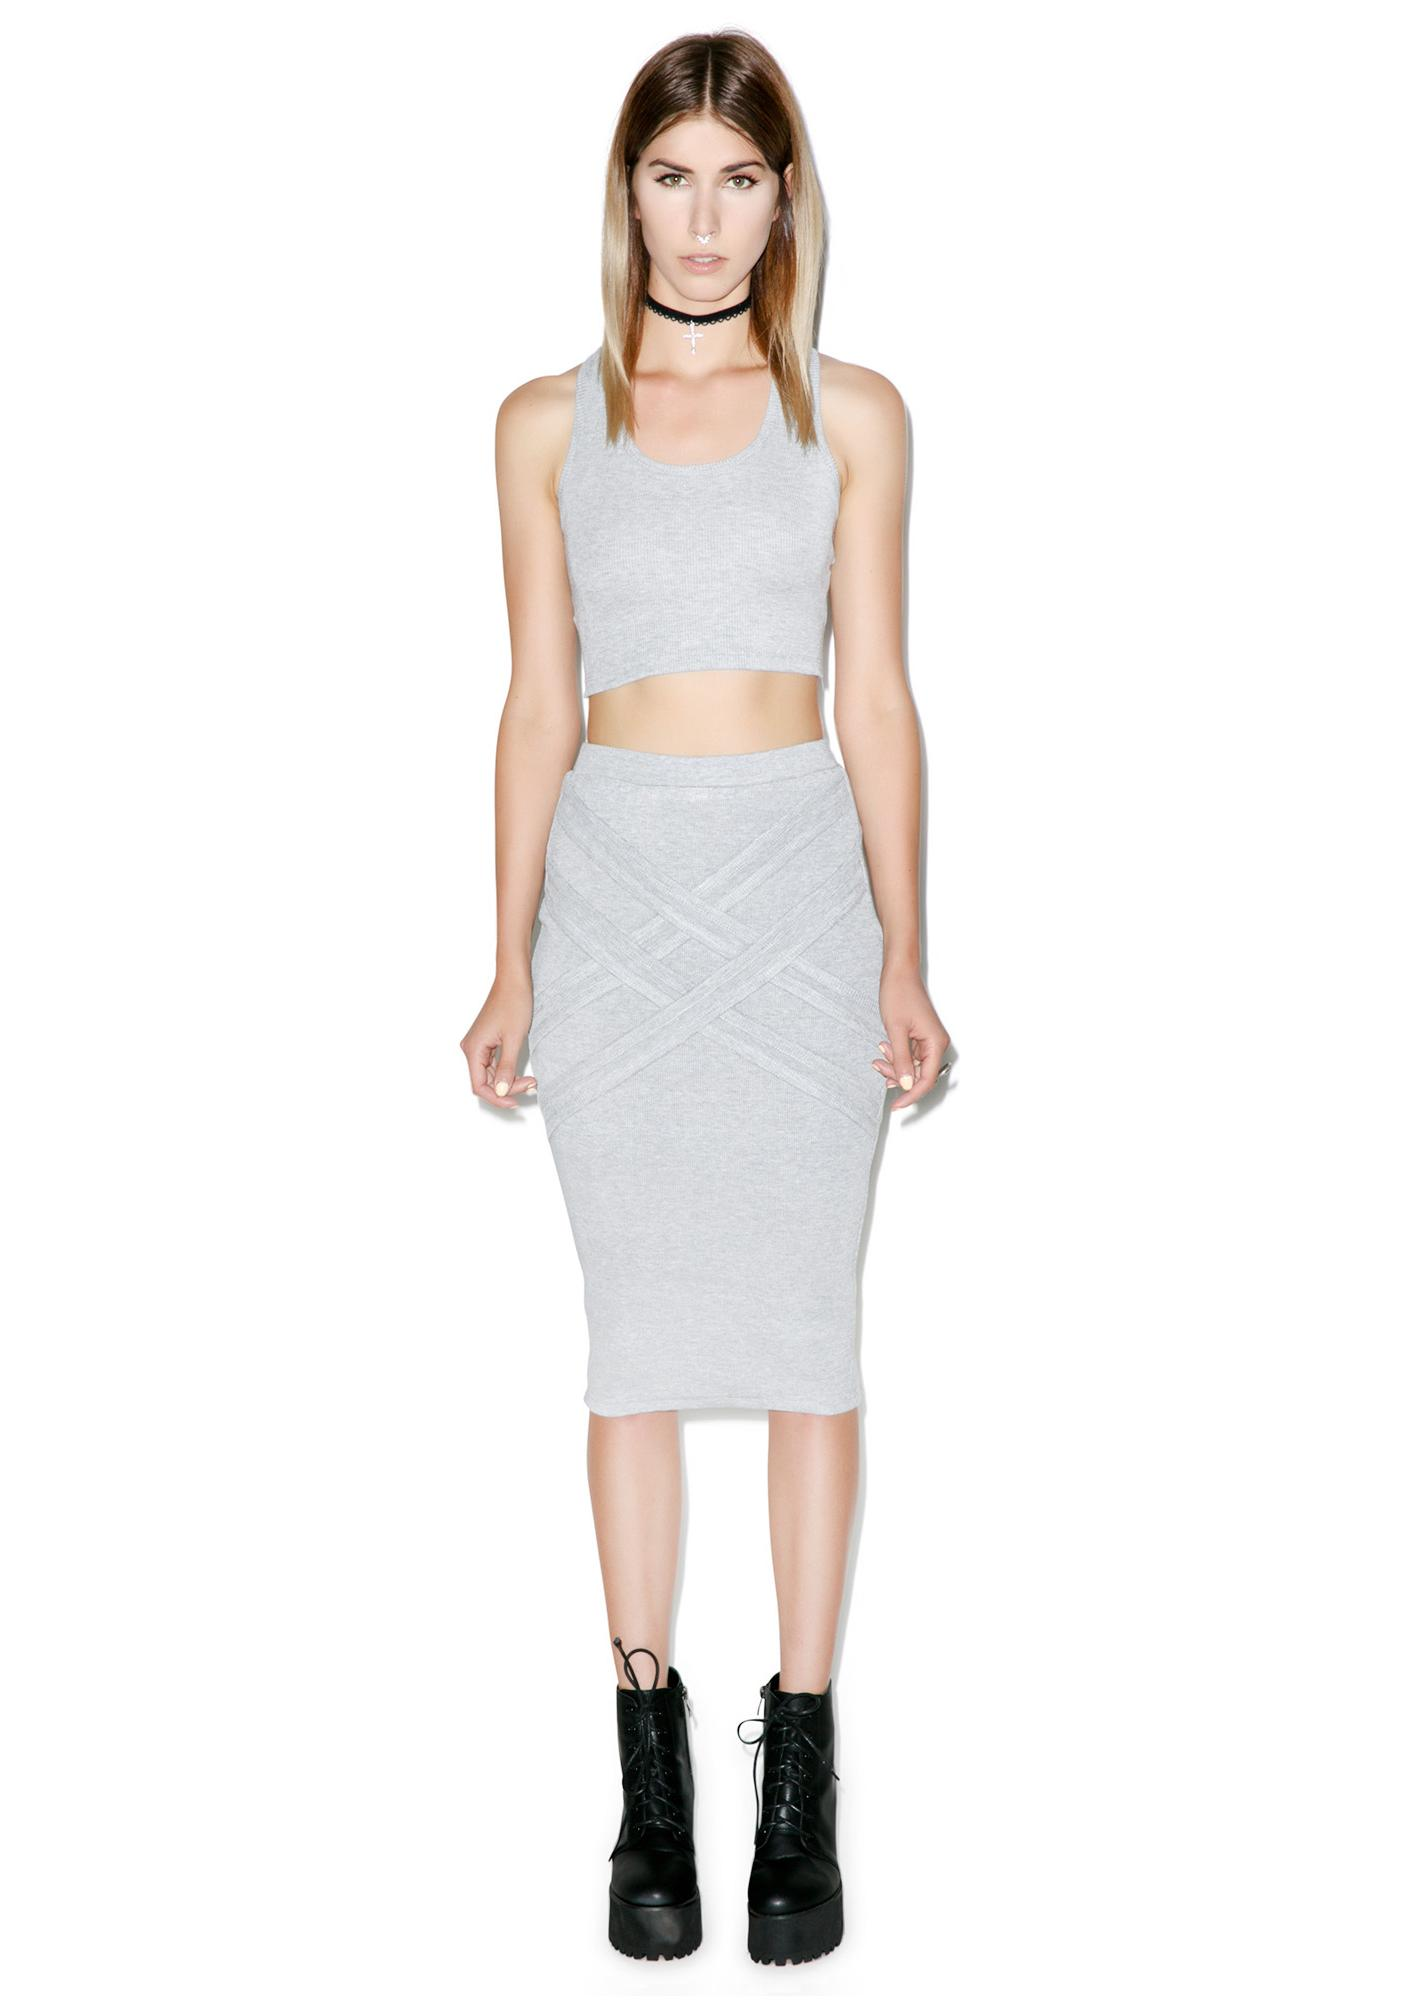 Nefertiti Rib Skirt